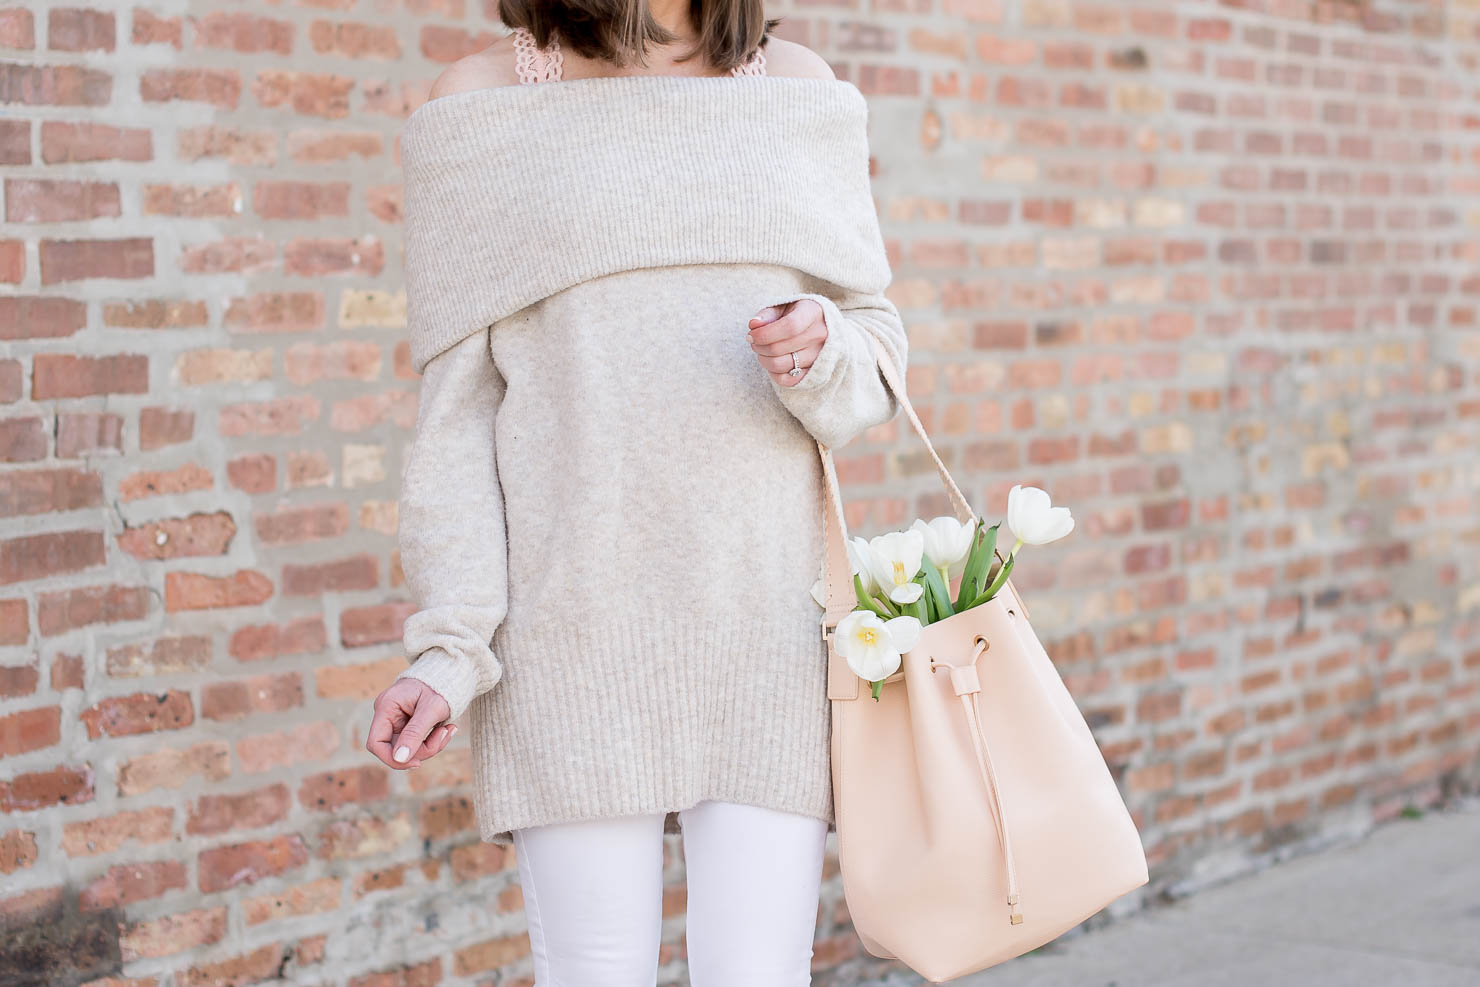 spring sweater, cozy spring style, light neutrals off the shoulder sweater, white jeans, blush bucket bag white tulips taking, your winter favorites into spring, the perfect nude heel for everyday